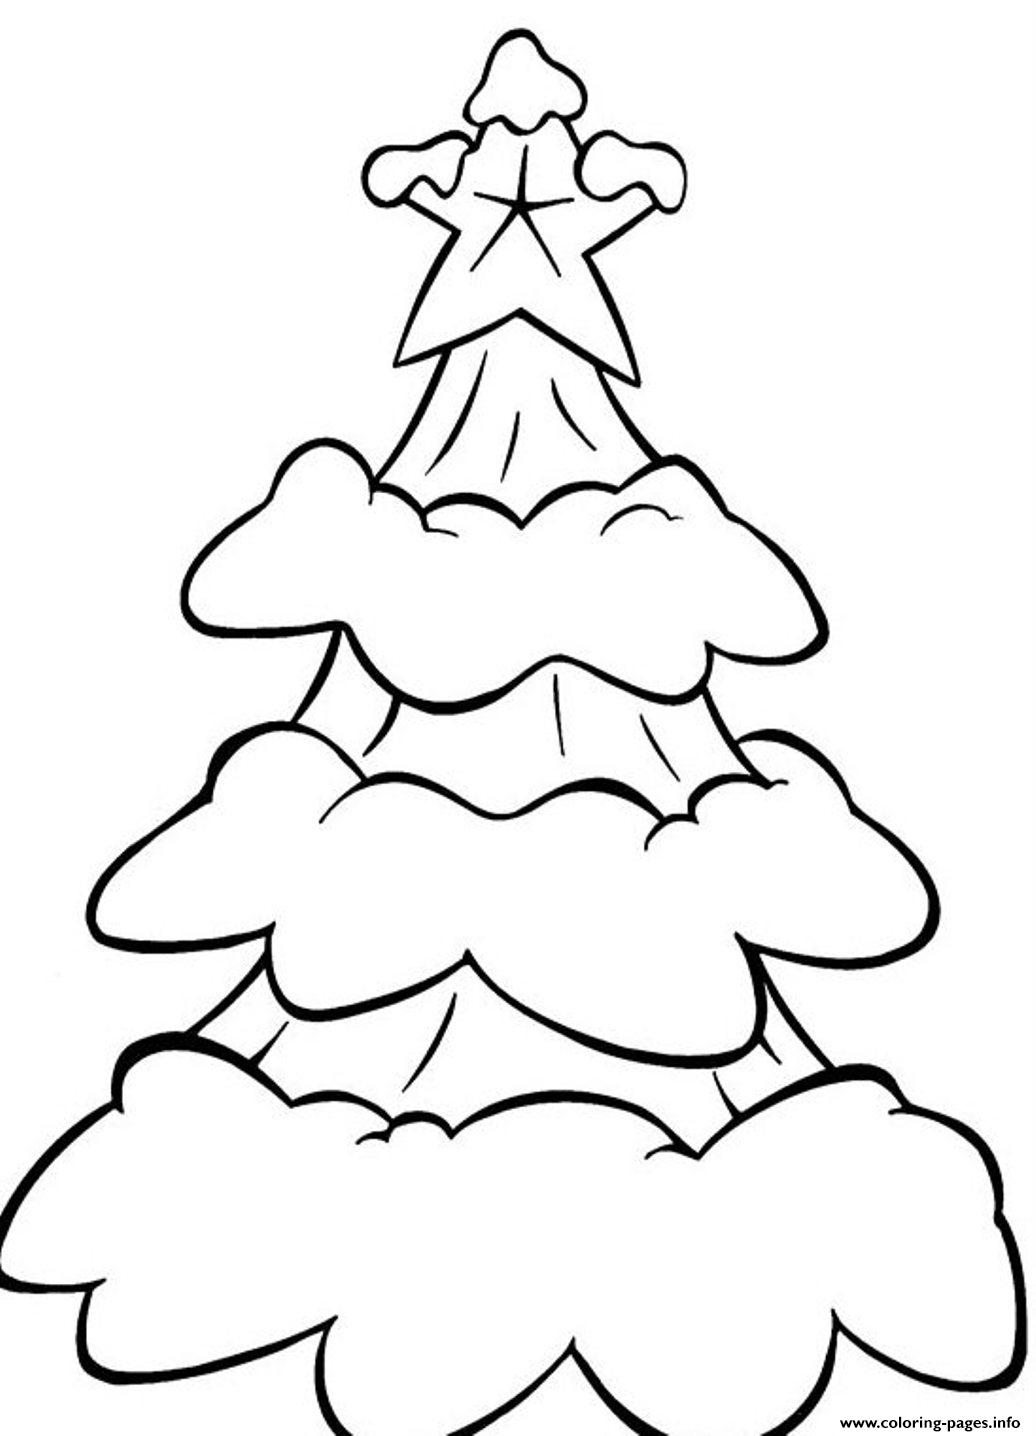 Free S Christmas Snow In A Tree273f coloring pages